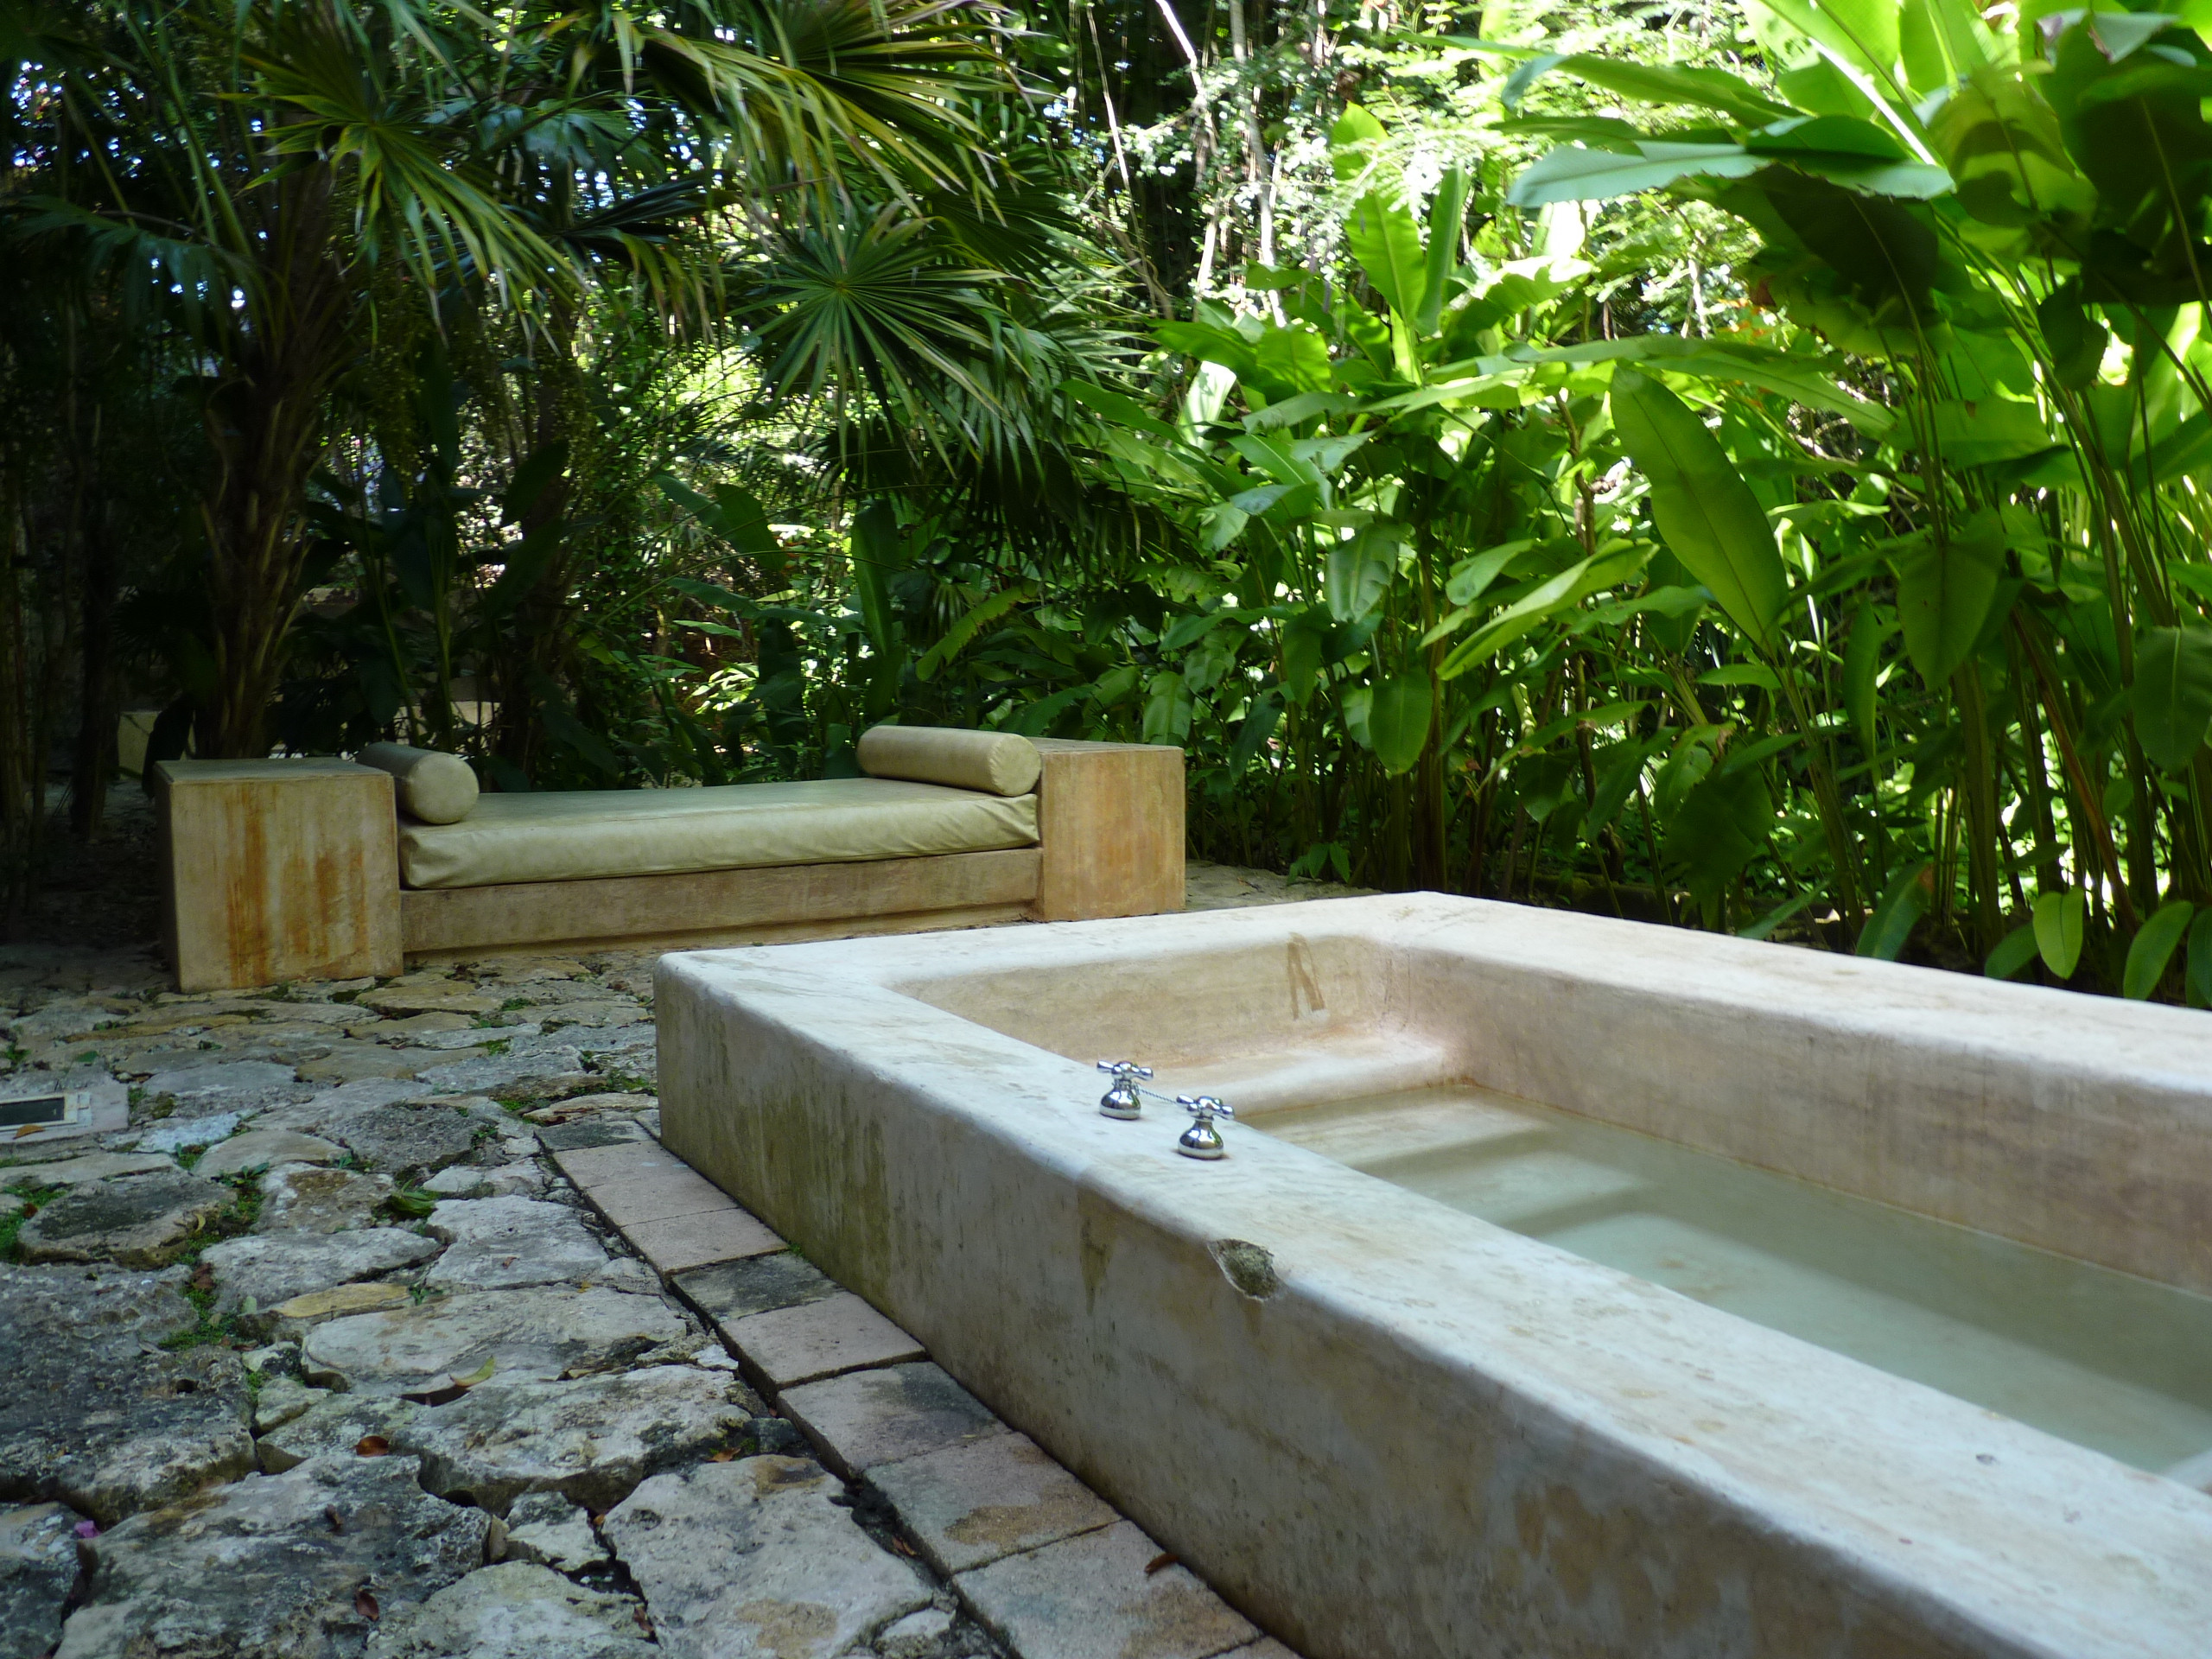 Best ideas about DIY Plunge Pool . Save or Pin for Hilary on Pinterest Now.